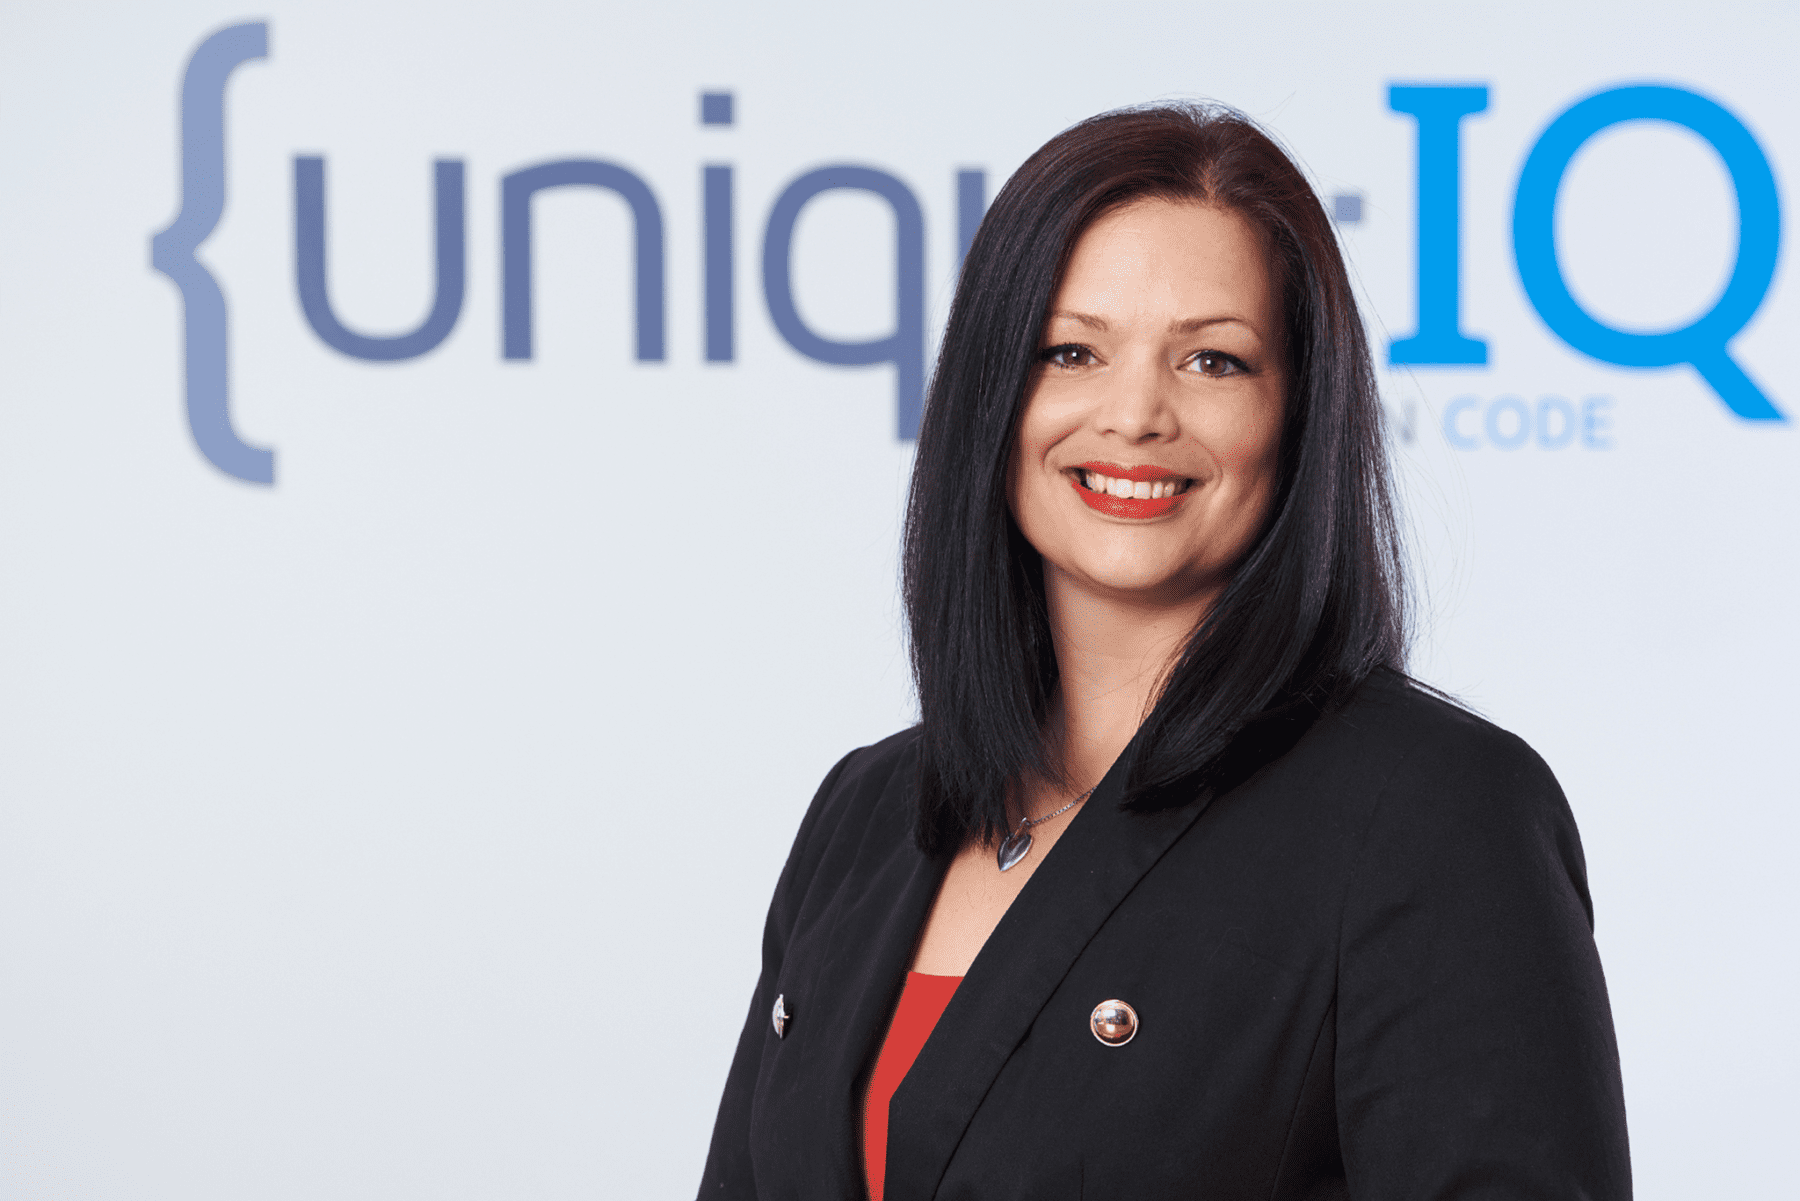 Kate Beverley, Business Administrator at Unique IQ